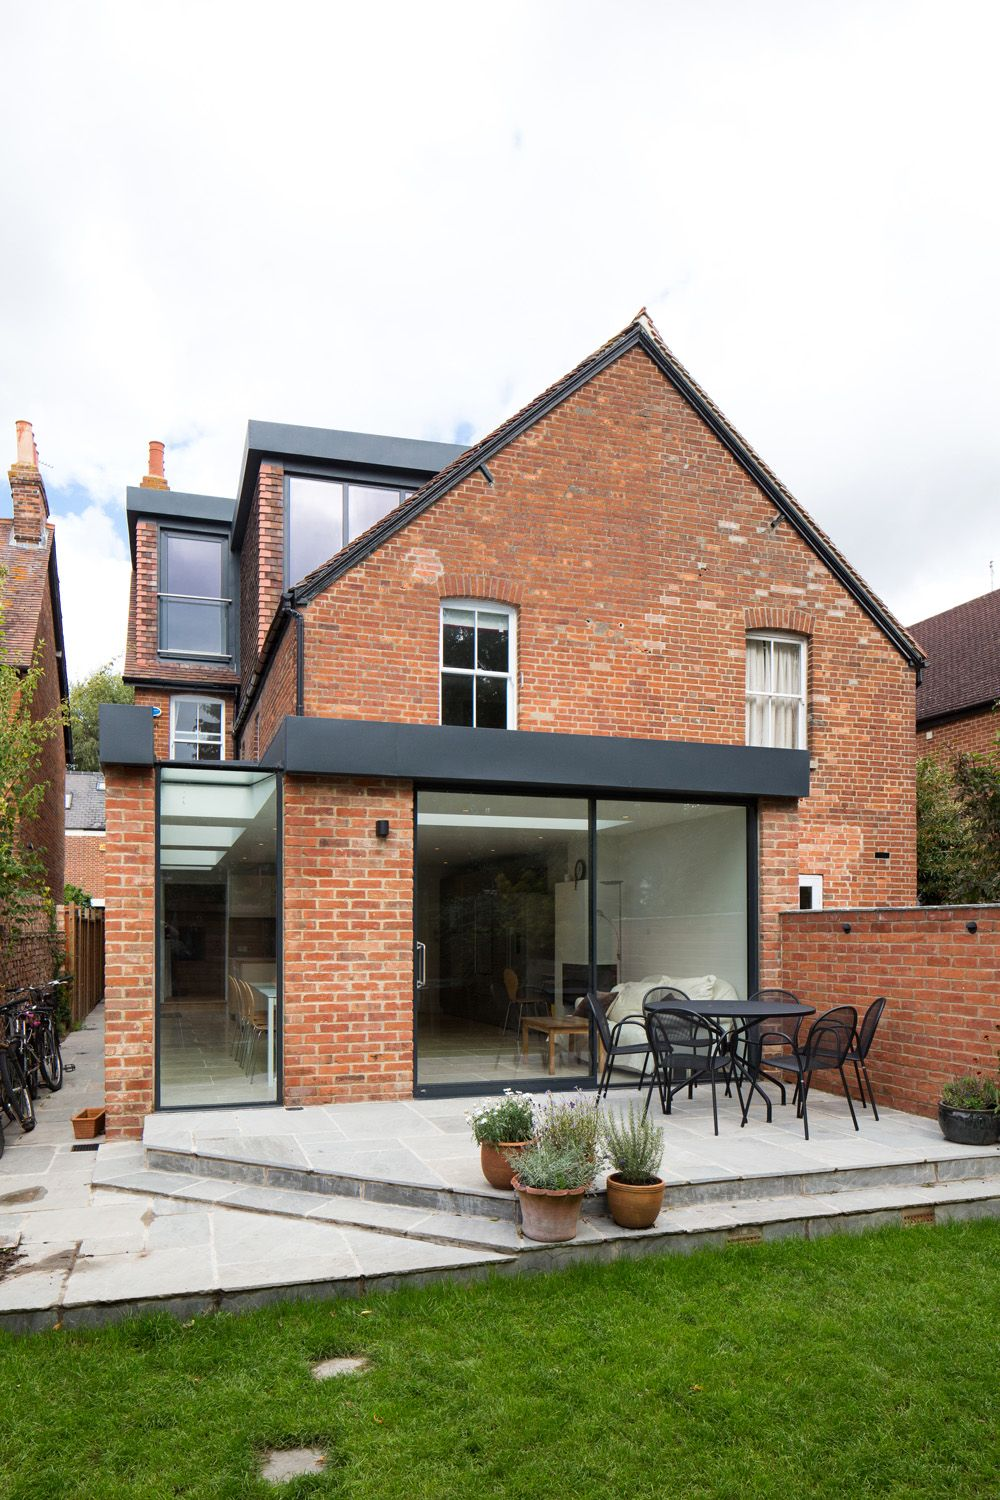 7 Stunning Home Extension Ideas: Full Renovation And Extension